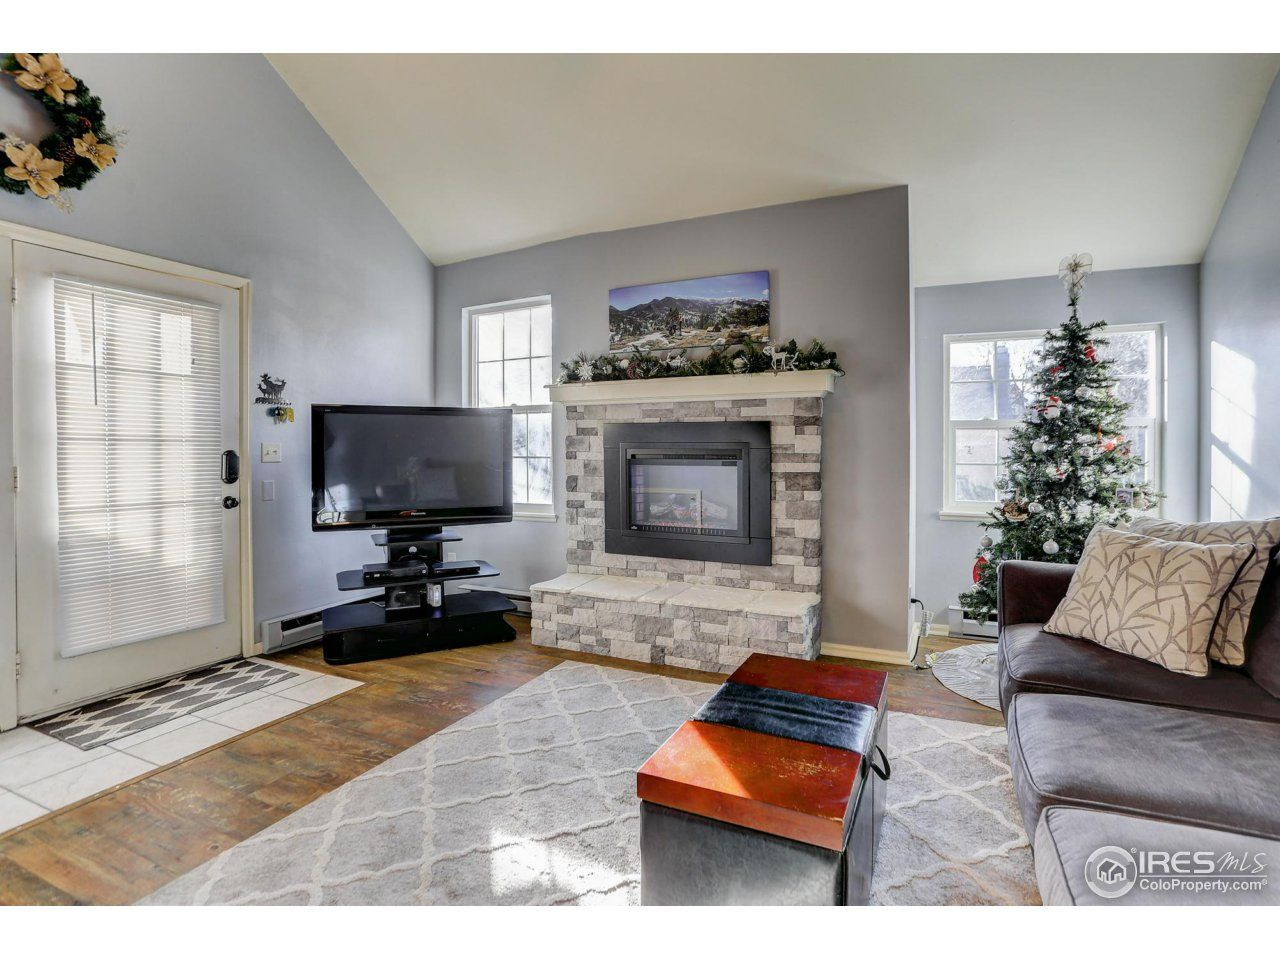 Buy A Home In Fort Collins With Carrie Snow As Your Agent. She Has 14 Years  Of Experience In The Real Estate Industry In Real Estate Appraisal, ...